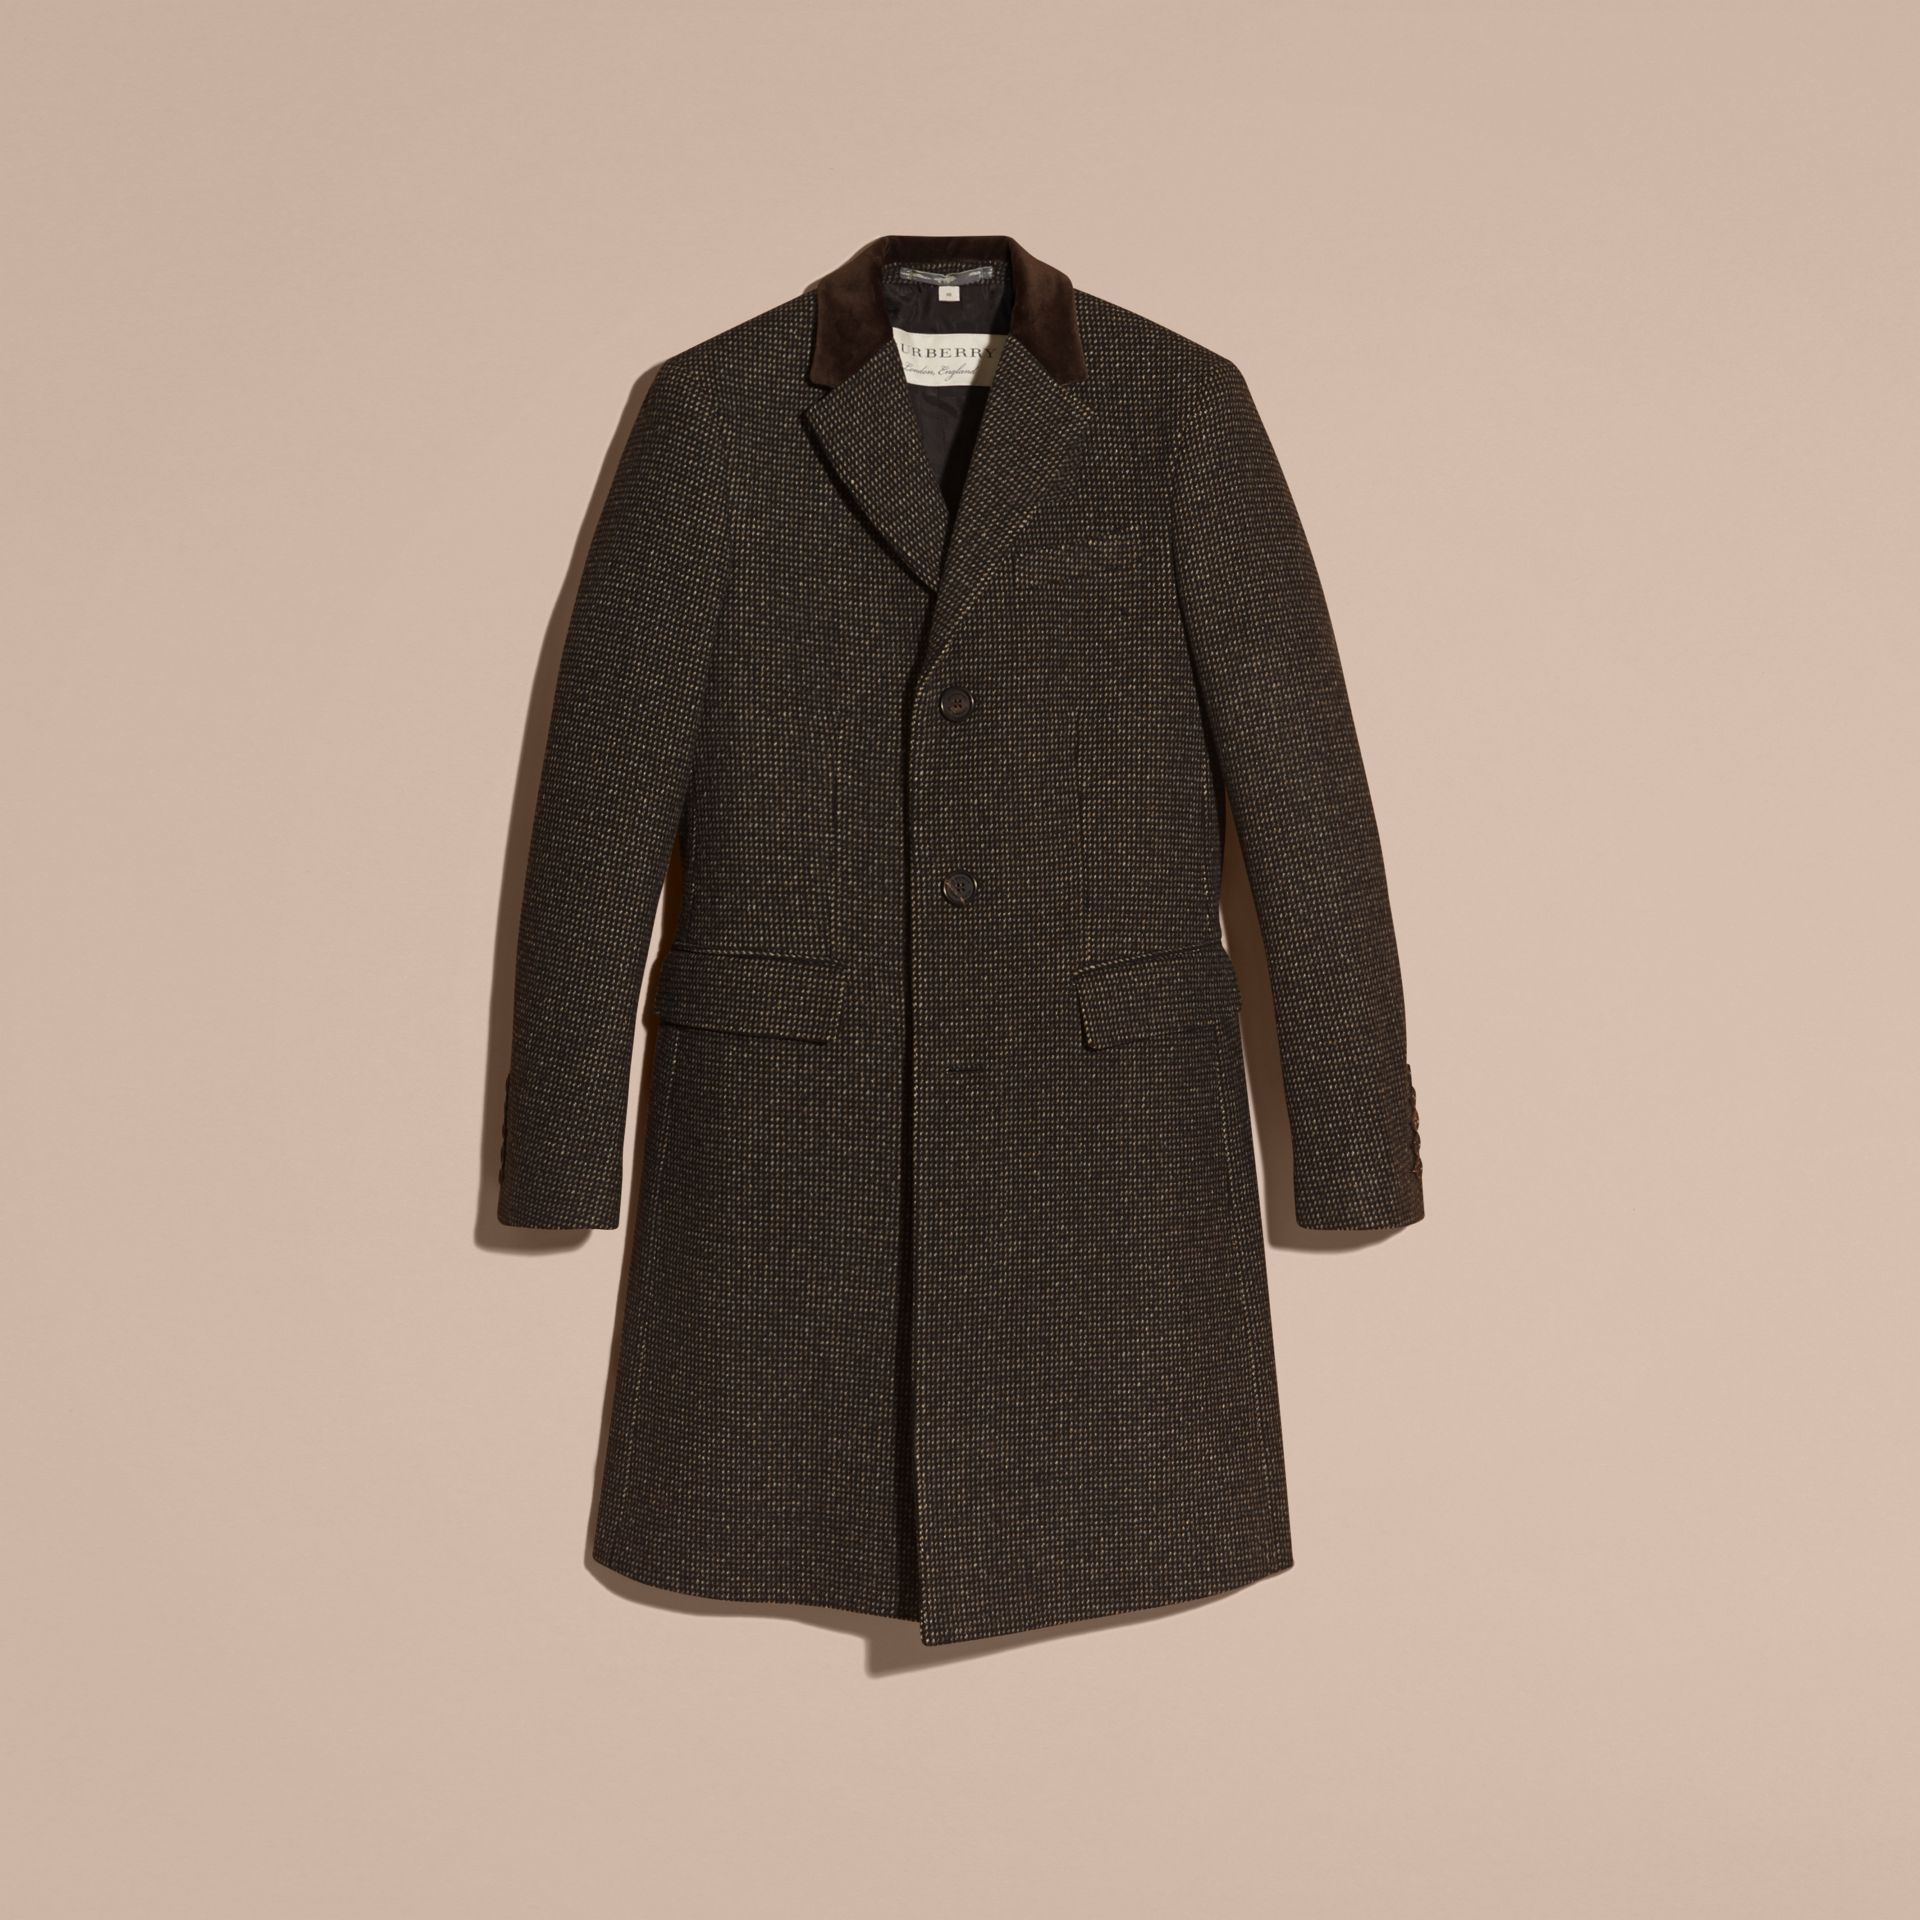 Mid camel Velvet Collar Tailored Wool Blend Coat - gallery image 4